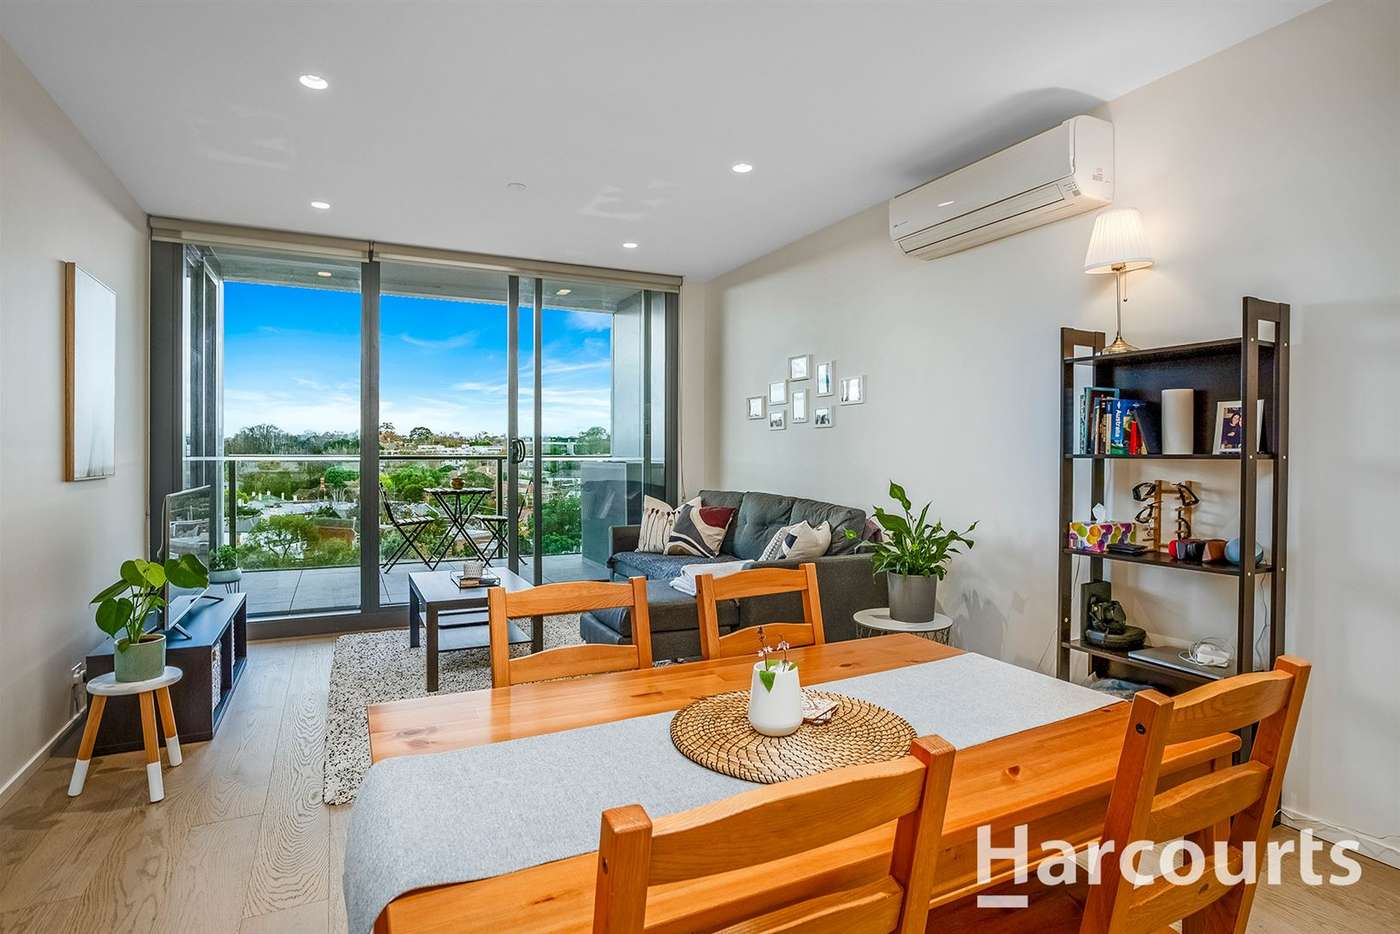 Main view of Homely apartment listing, 401/8D Evergreen Mews, Armadale VIC 3143